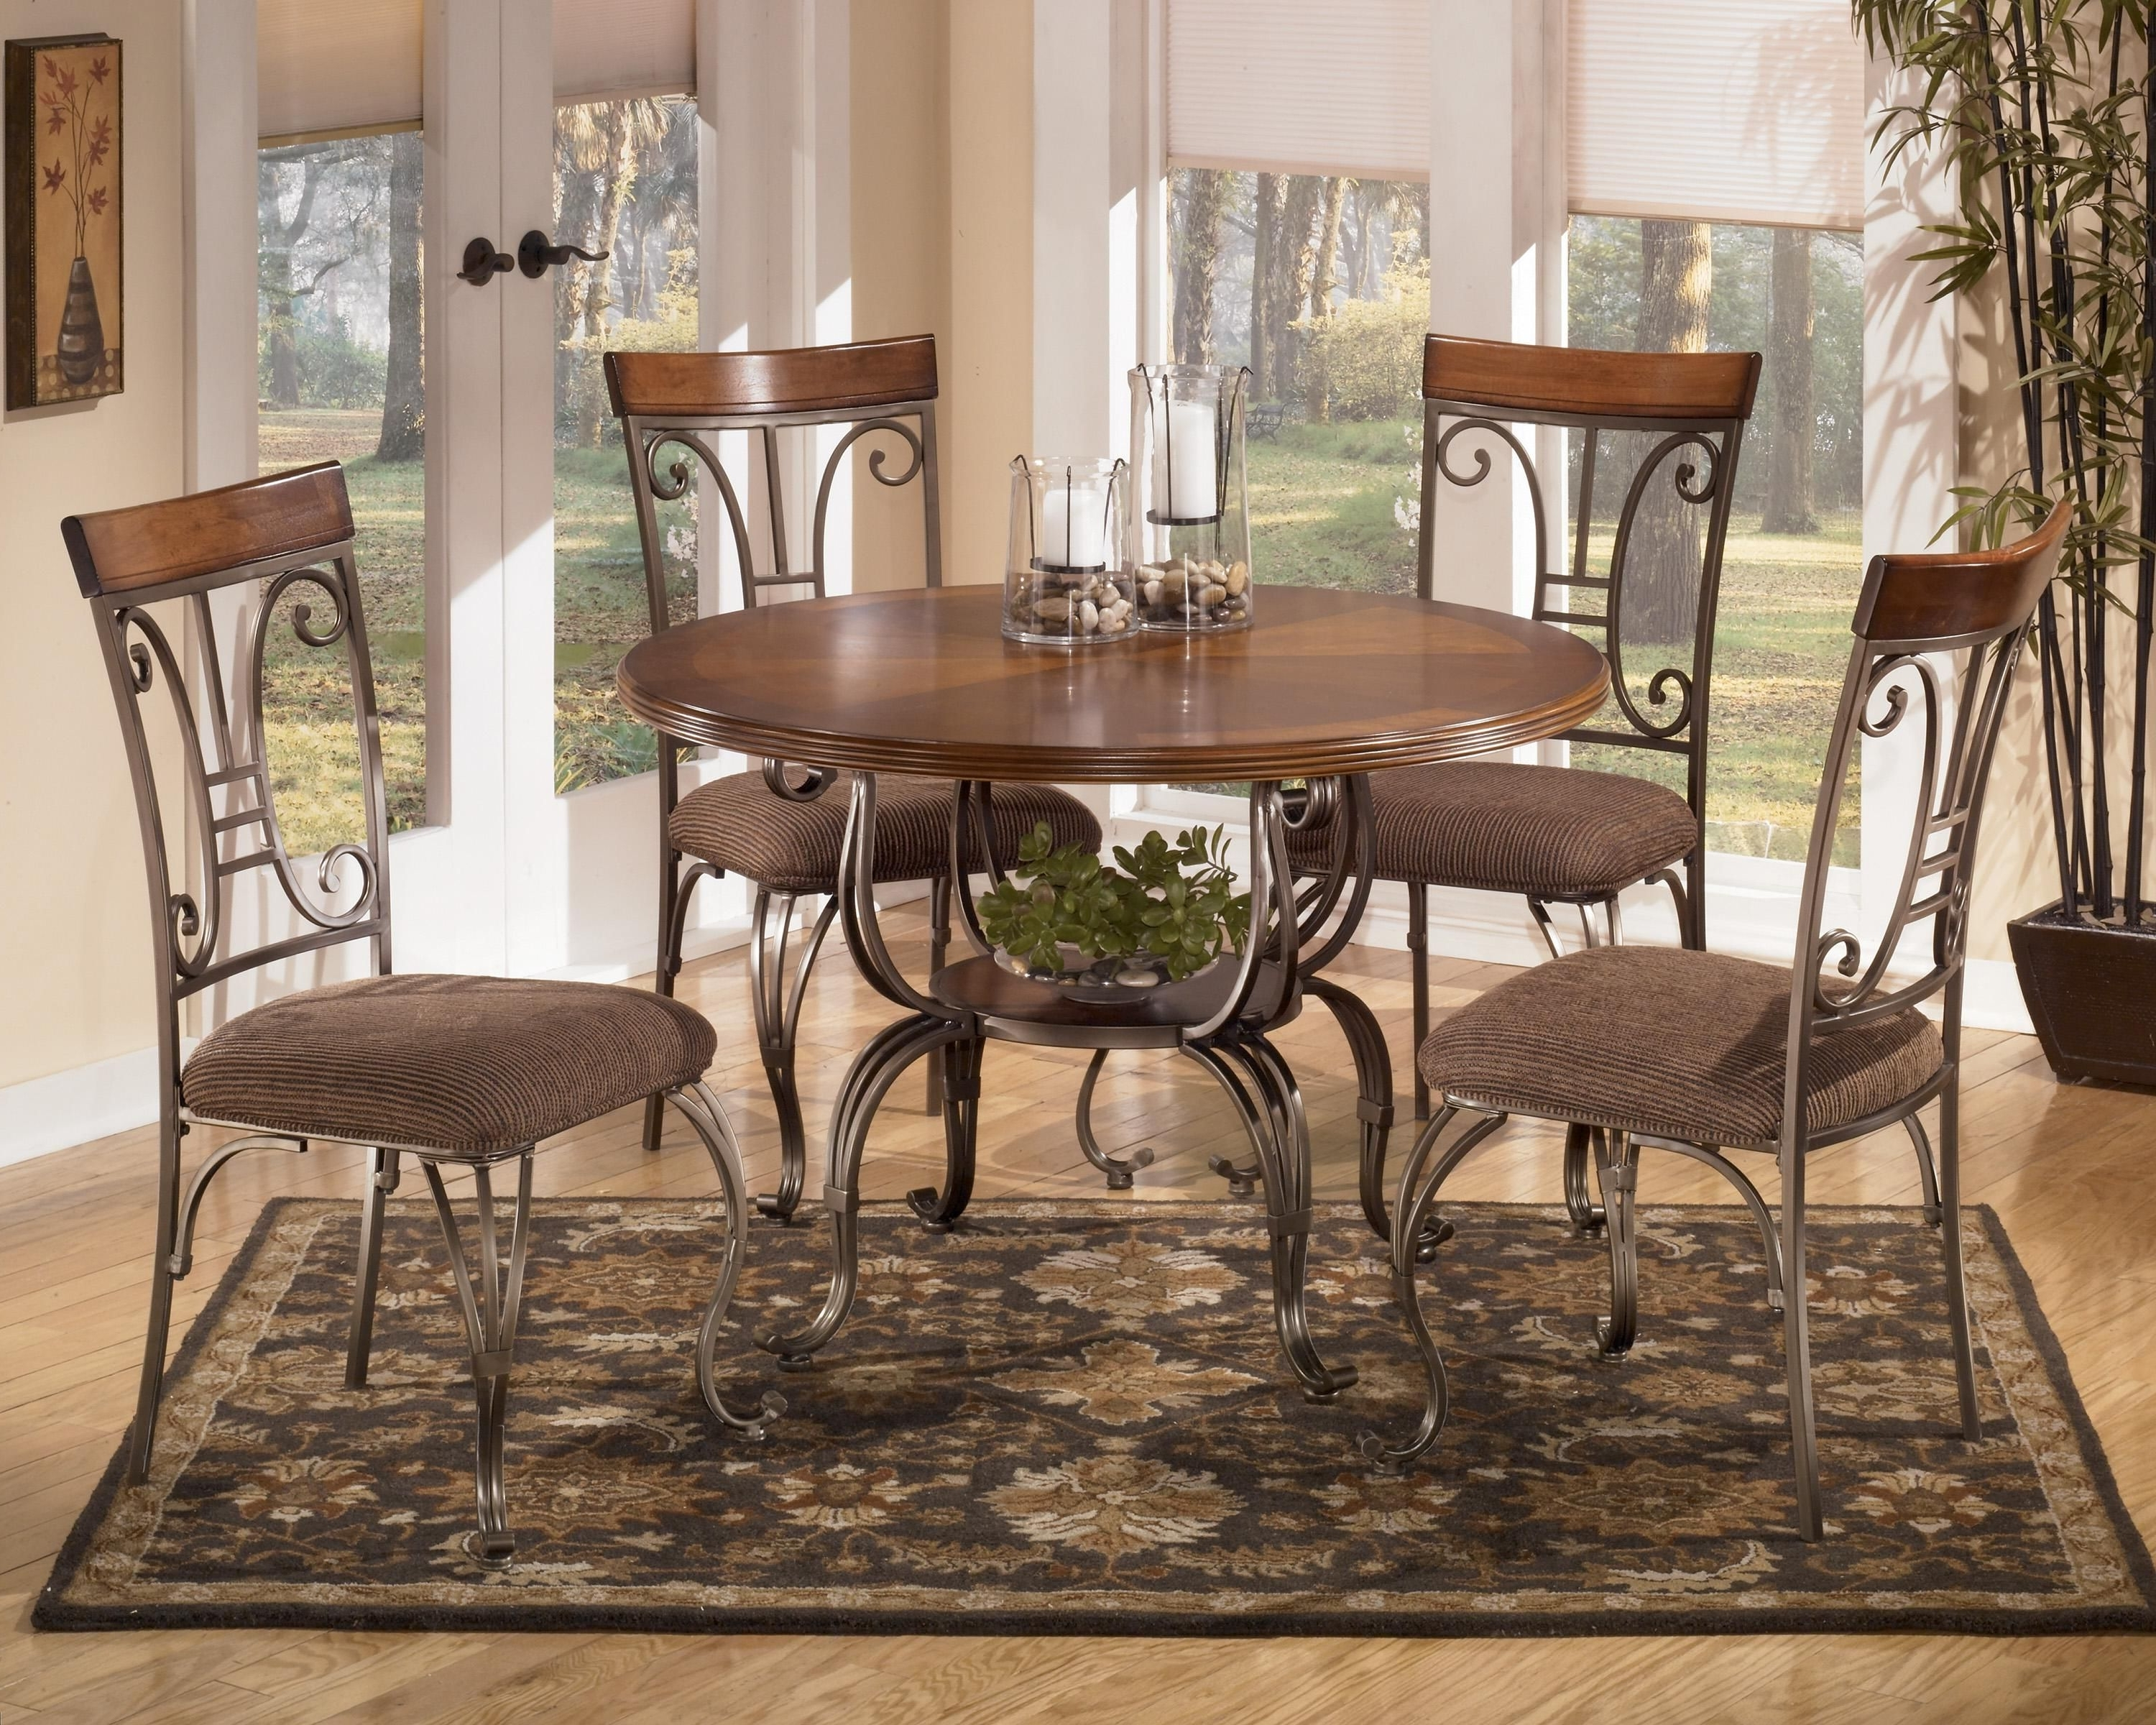 Plentywood 5 Piece Round Dining Table Setsignature Design Within Current Craftsman 7 Piece Rectangular Extension Dining Sets With Arm & Uph Side Chairs (View 20 of 25)